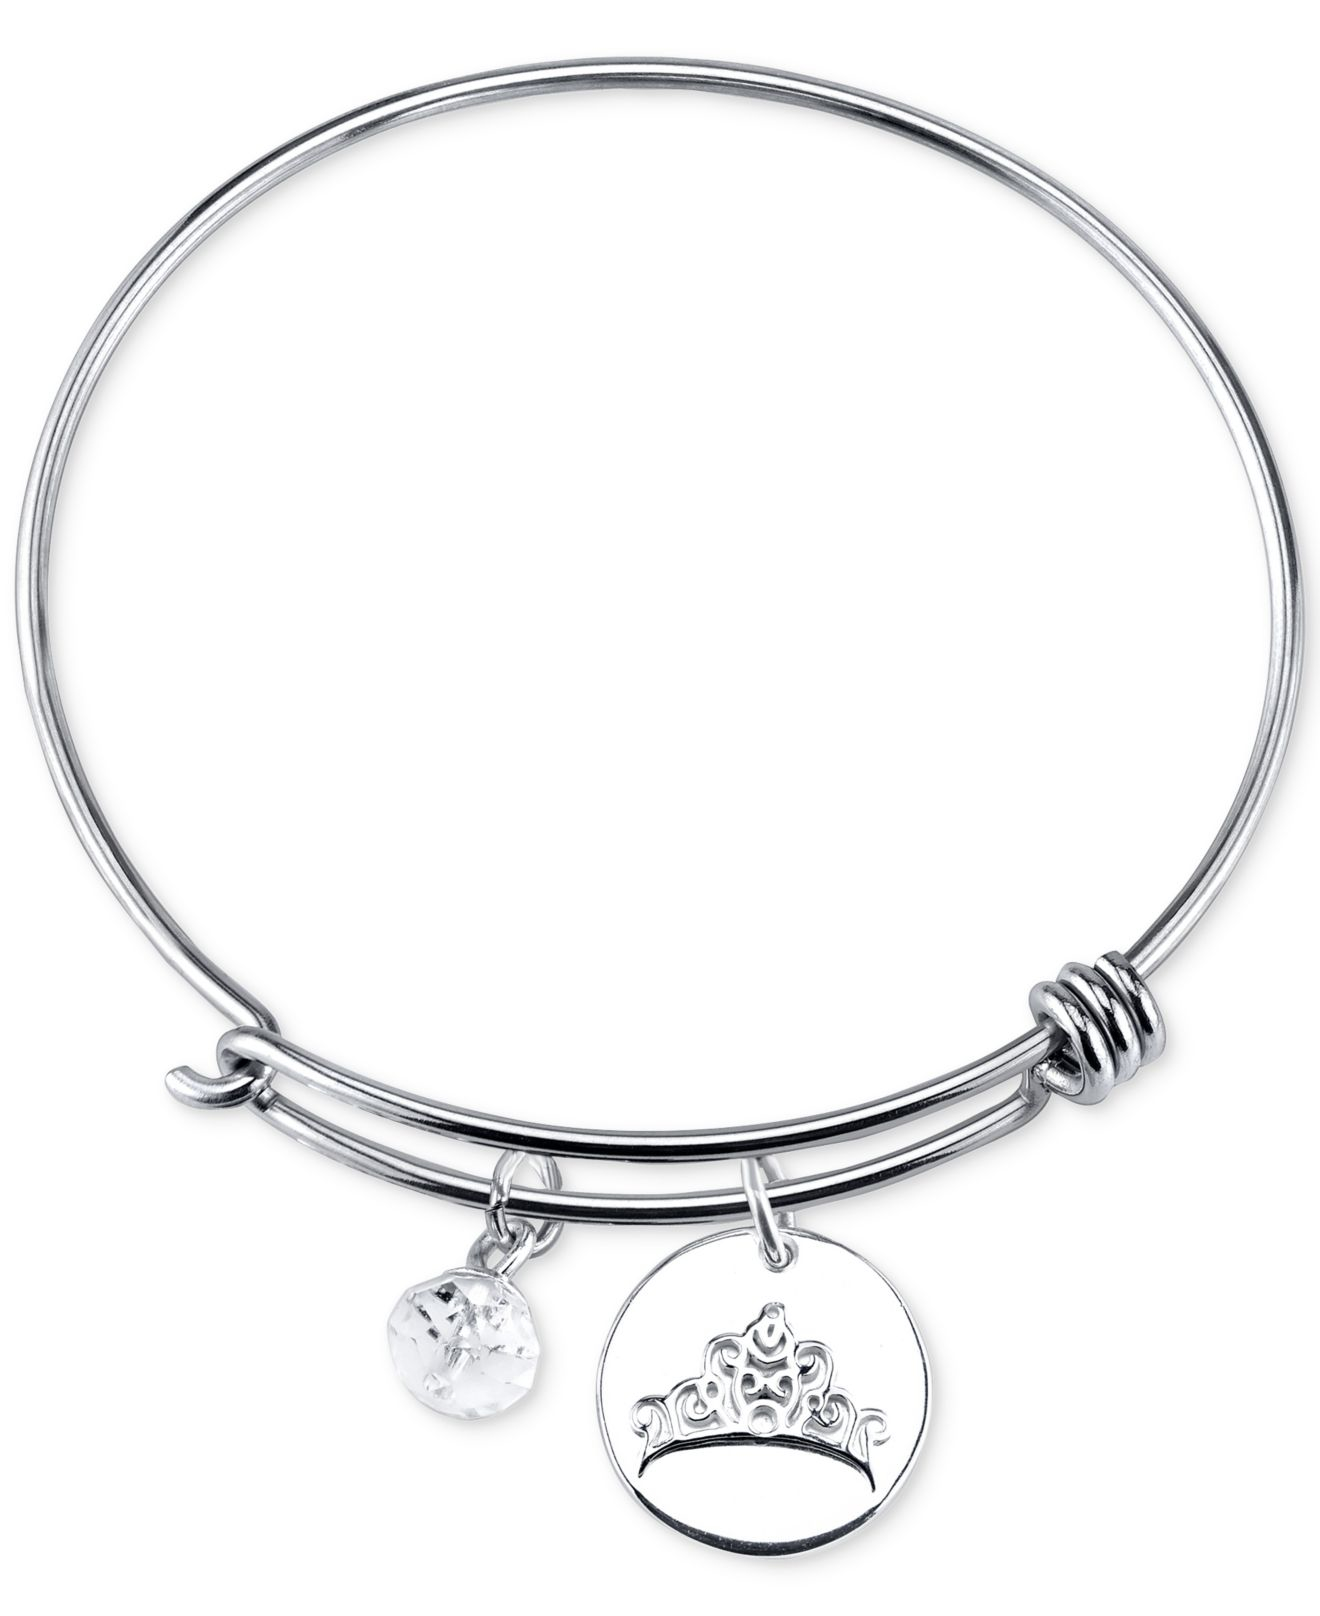 Sterling Silver Charms For Bracelets: Disney Dreams Charm Bangle Bracelet In Sterling Silver In